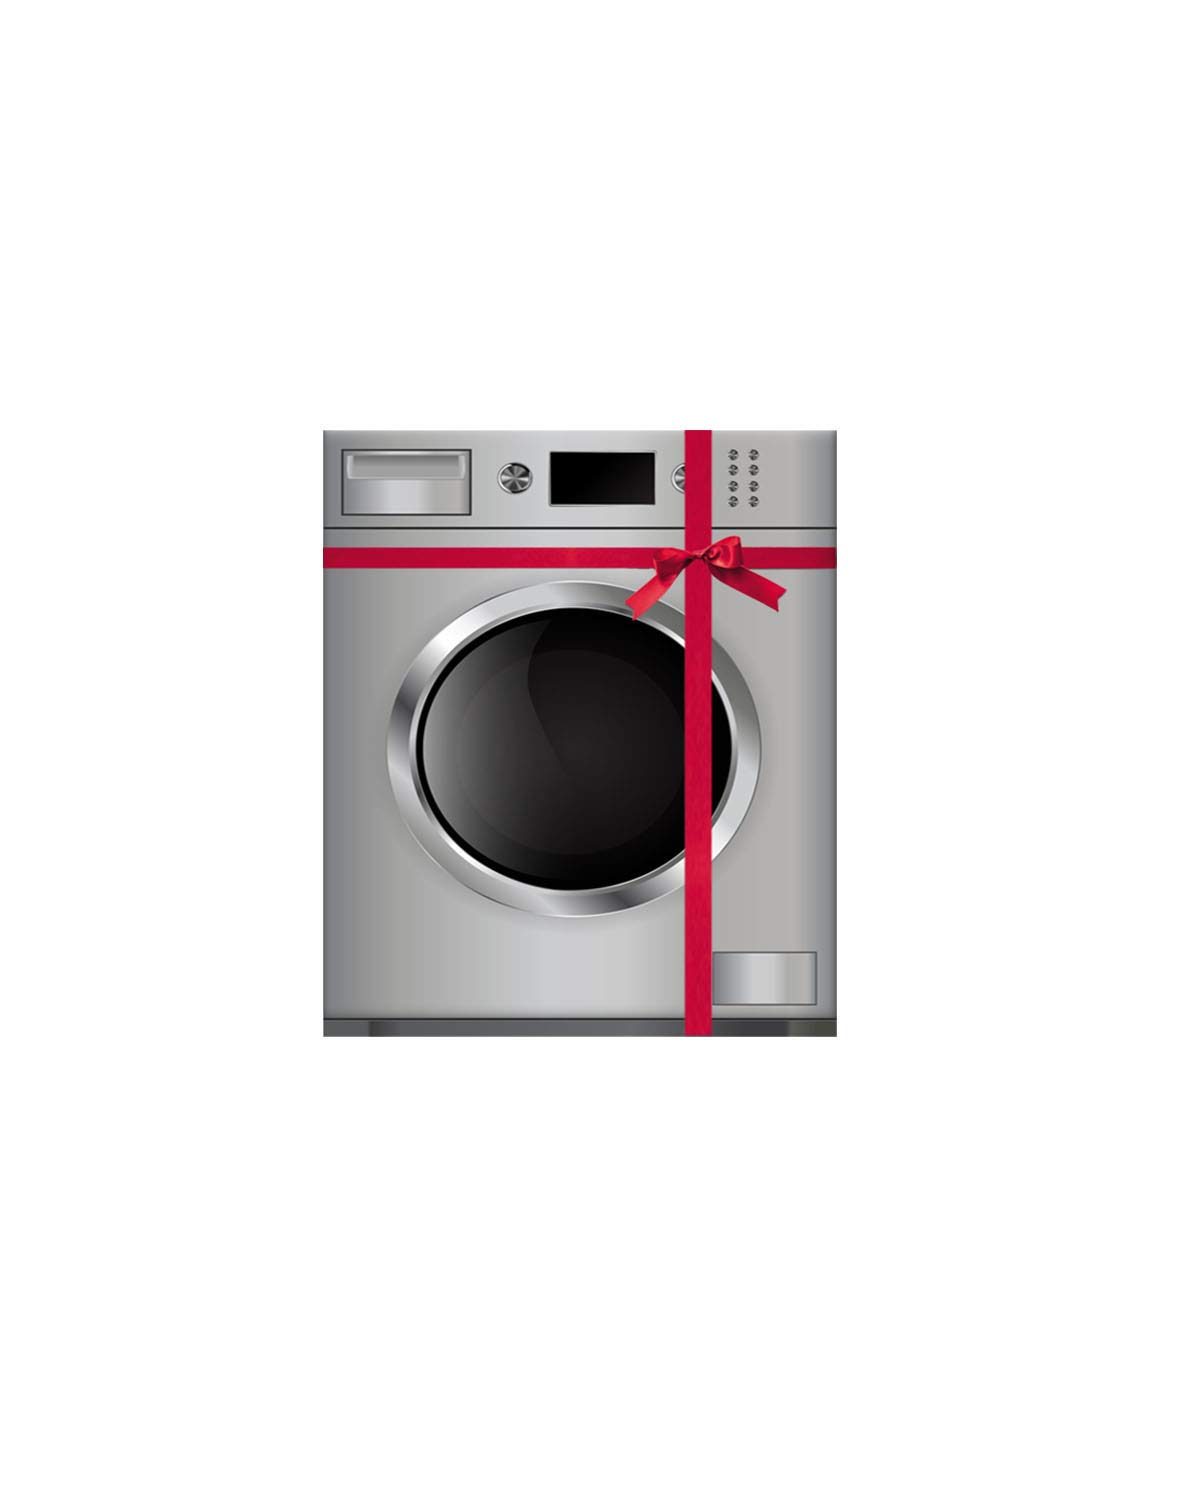 Oneassist 1 Year Extended Warranty Pro Plus Plan For Washing Machines Between Rs 5 000 Rs 15 000 Amazon In Home Kitchen